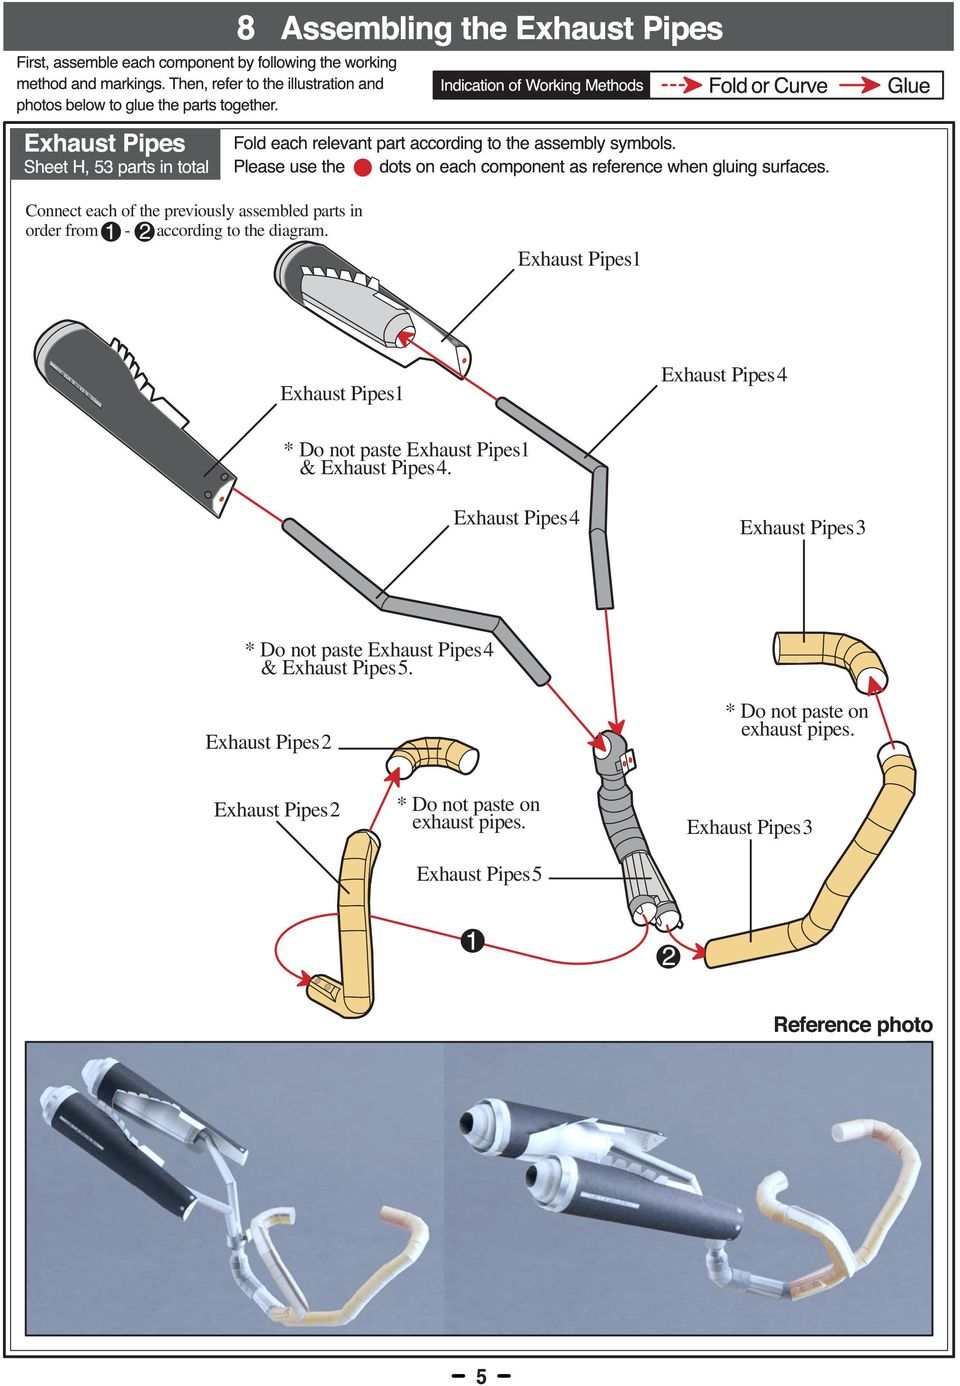 Exhaust Pipes Exhaust Pipes Exhaust Pipes * Do not paste Exhaust Pipes & Exhaust Pipes.